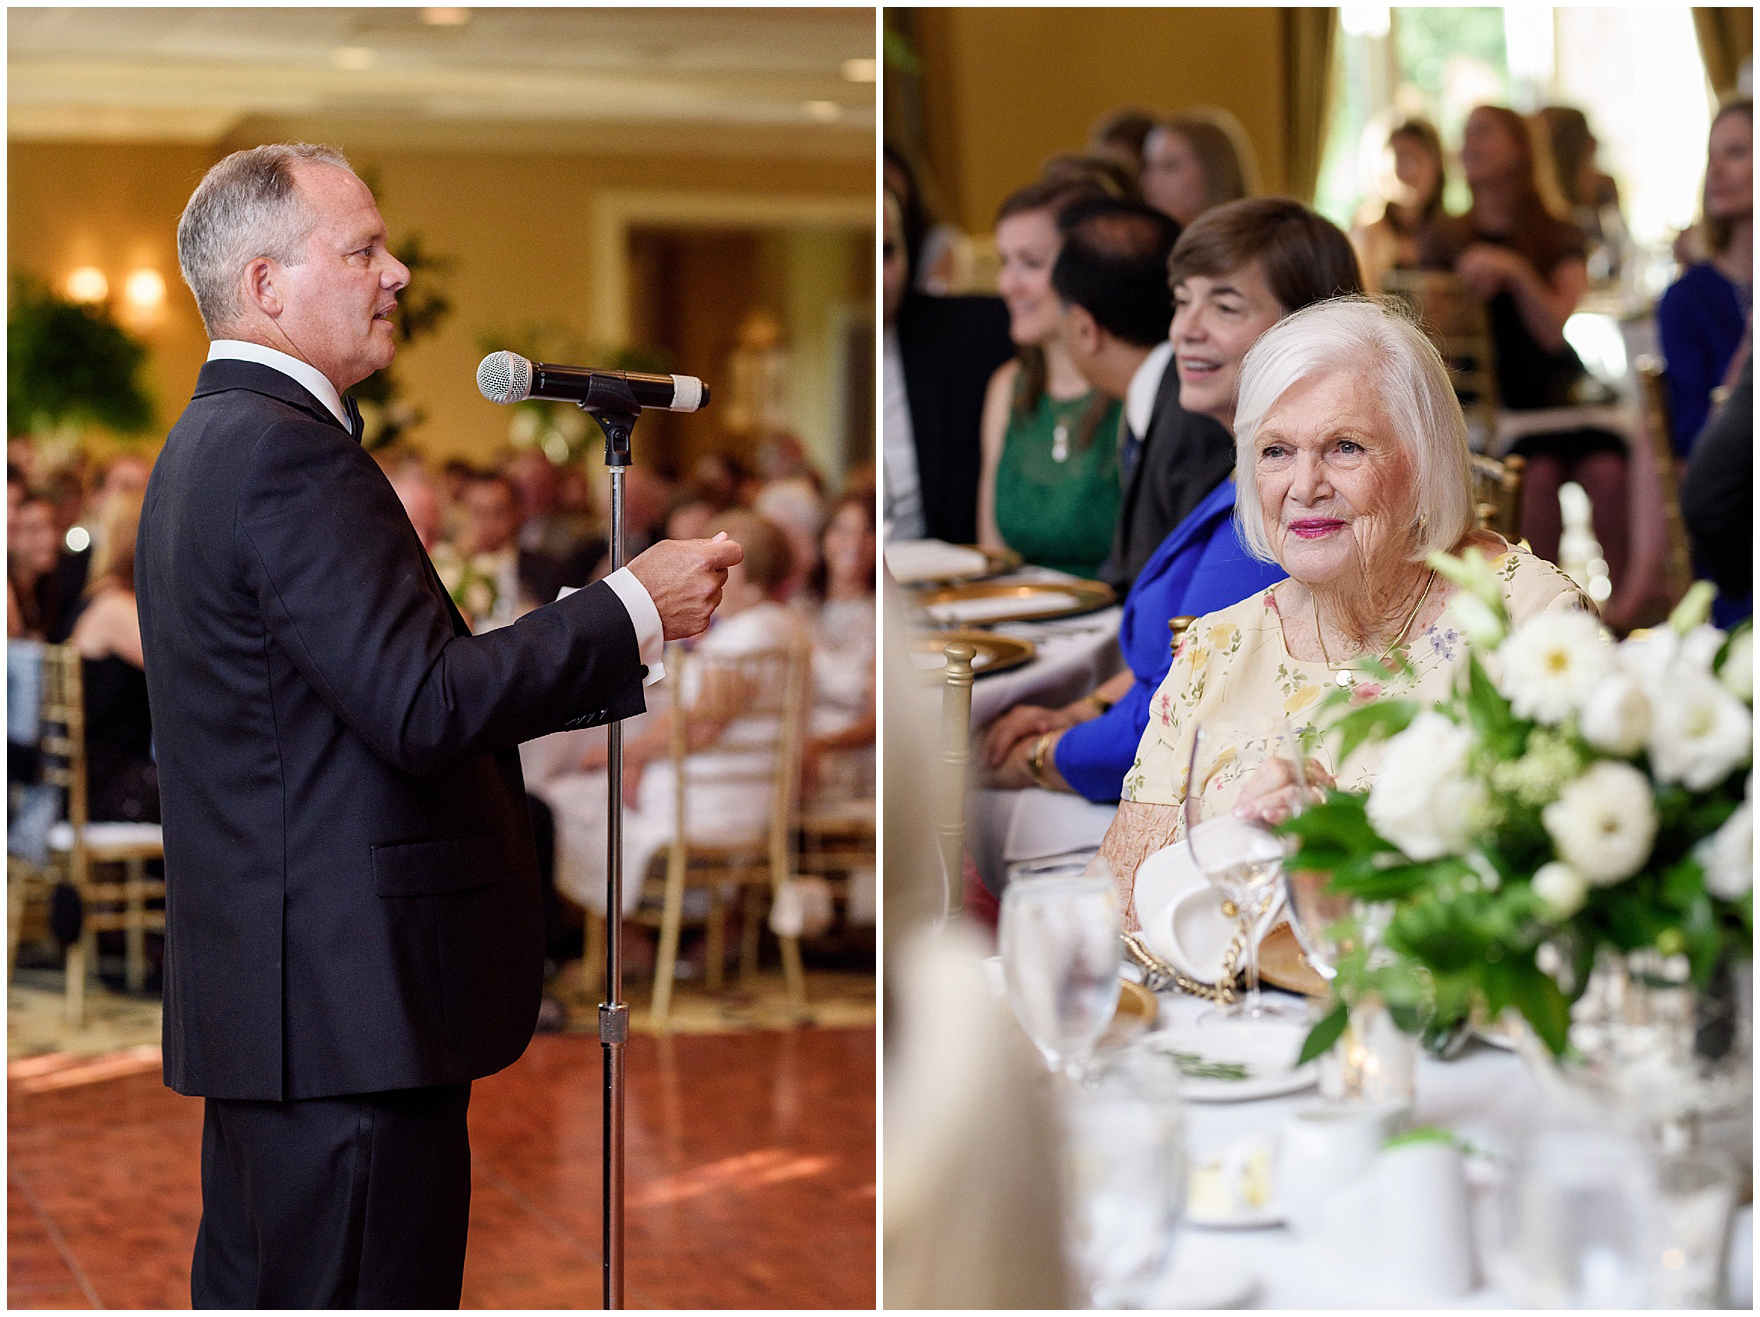 The father of the bride speaks at a Butterfield Country Club wedding.